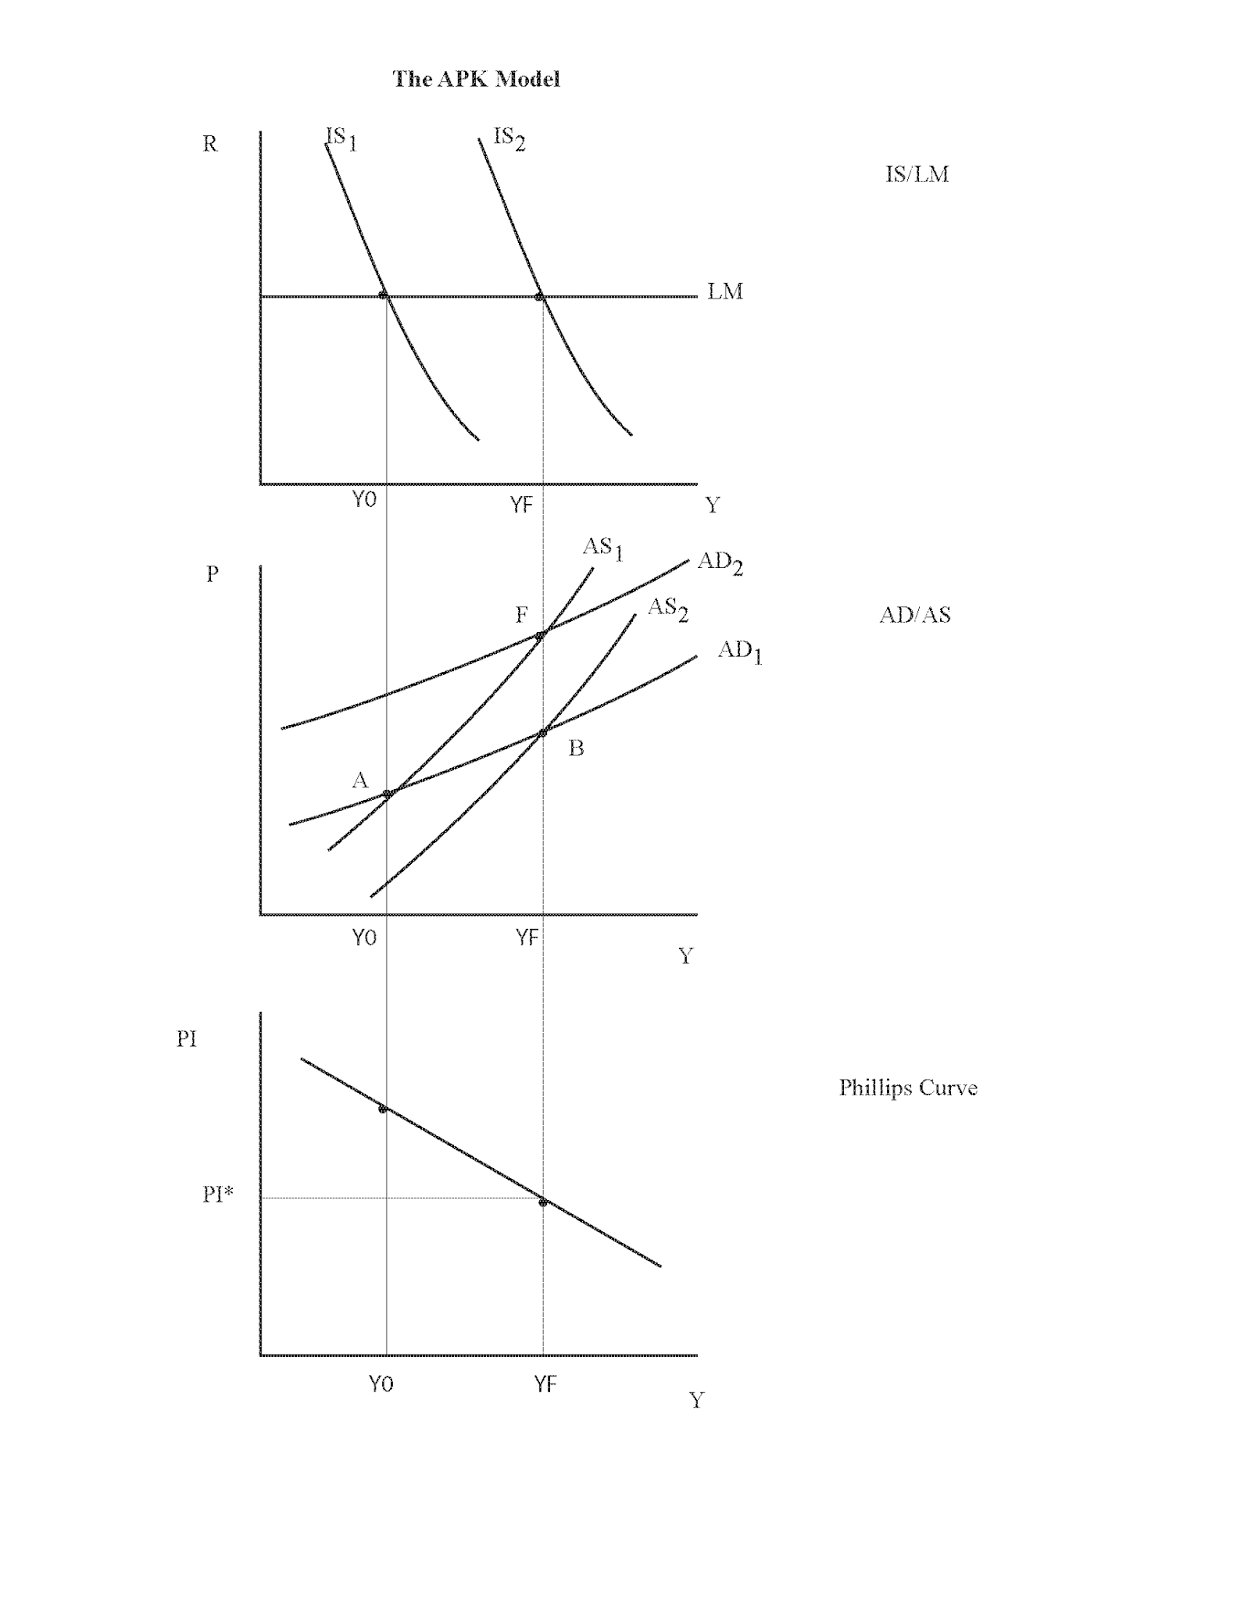 medium resolution of in the is lm part of the diagram we have the liquidity trap case with a flat lm curve in the ad as portion of the diagram the ad curve is